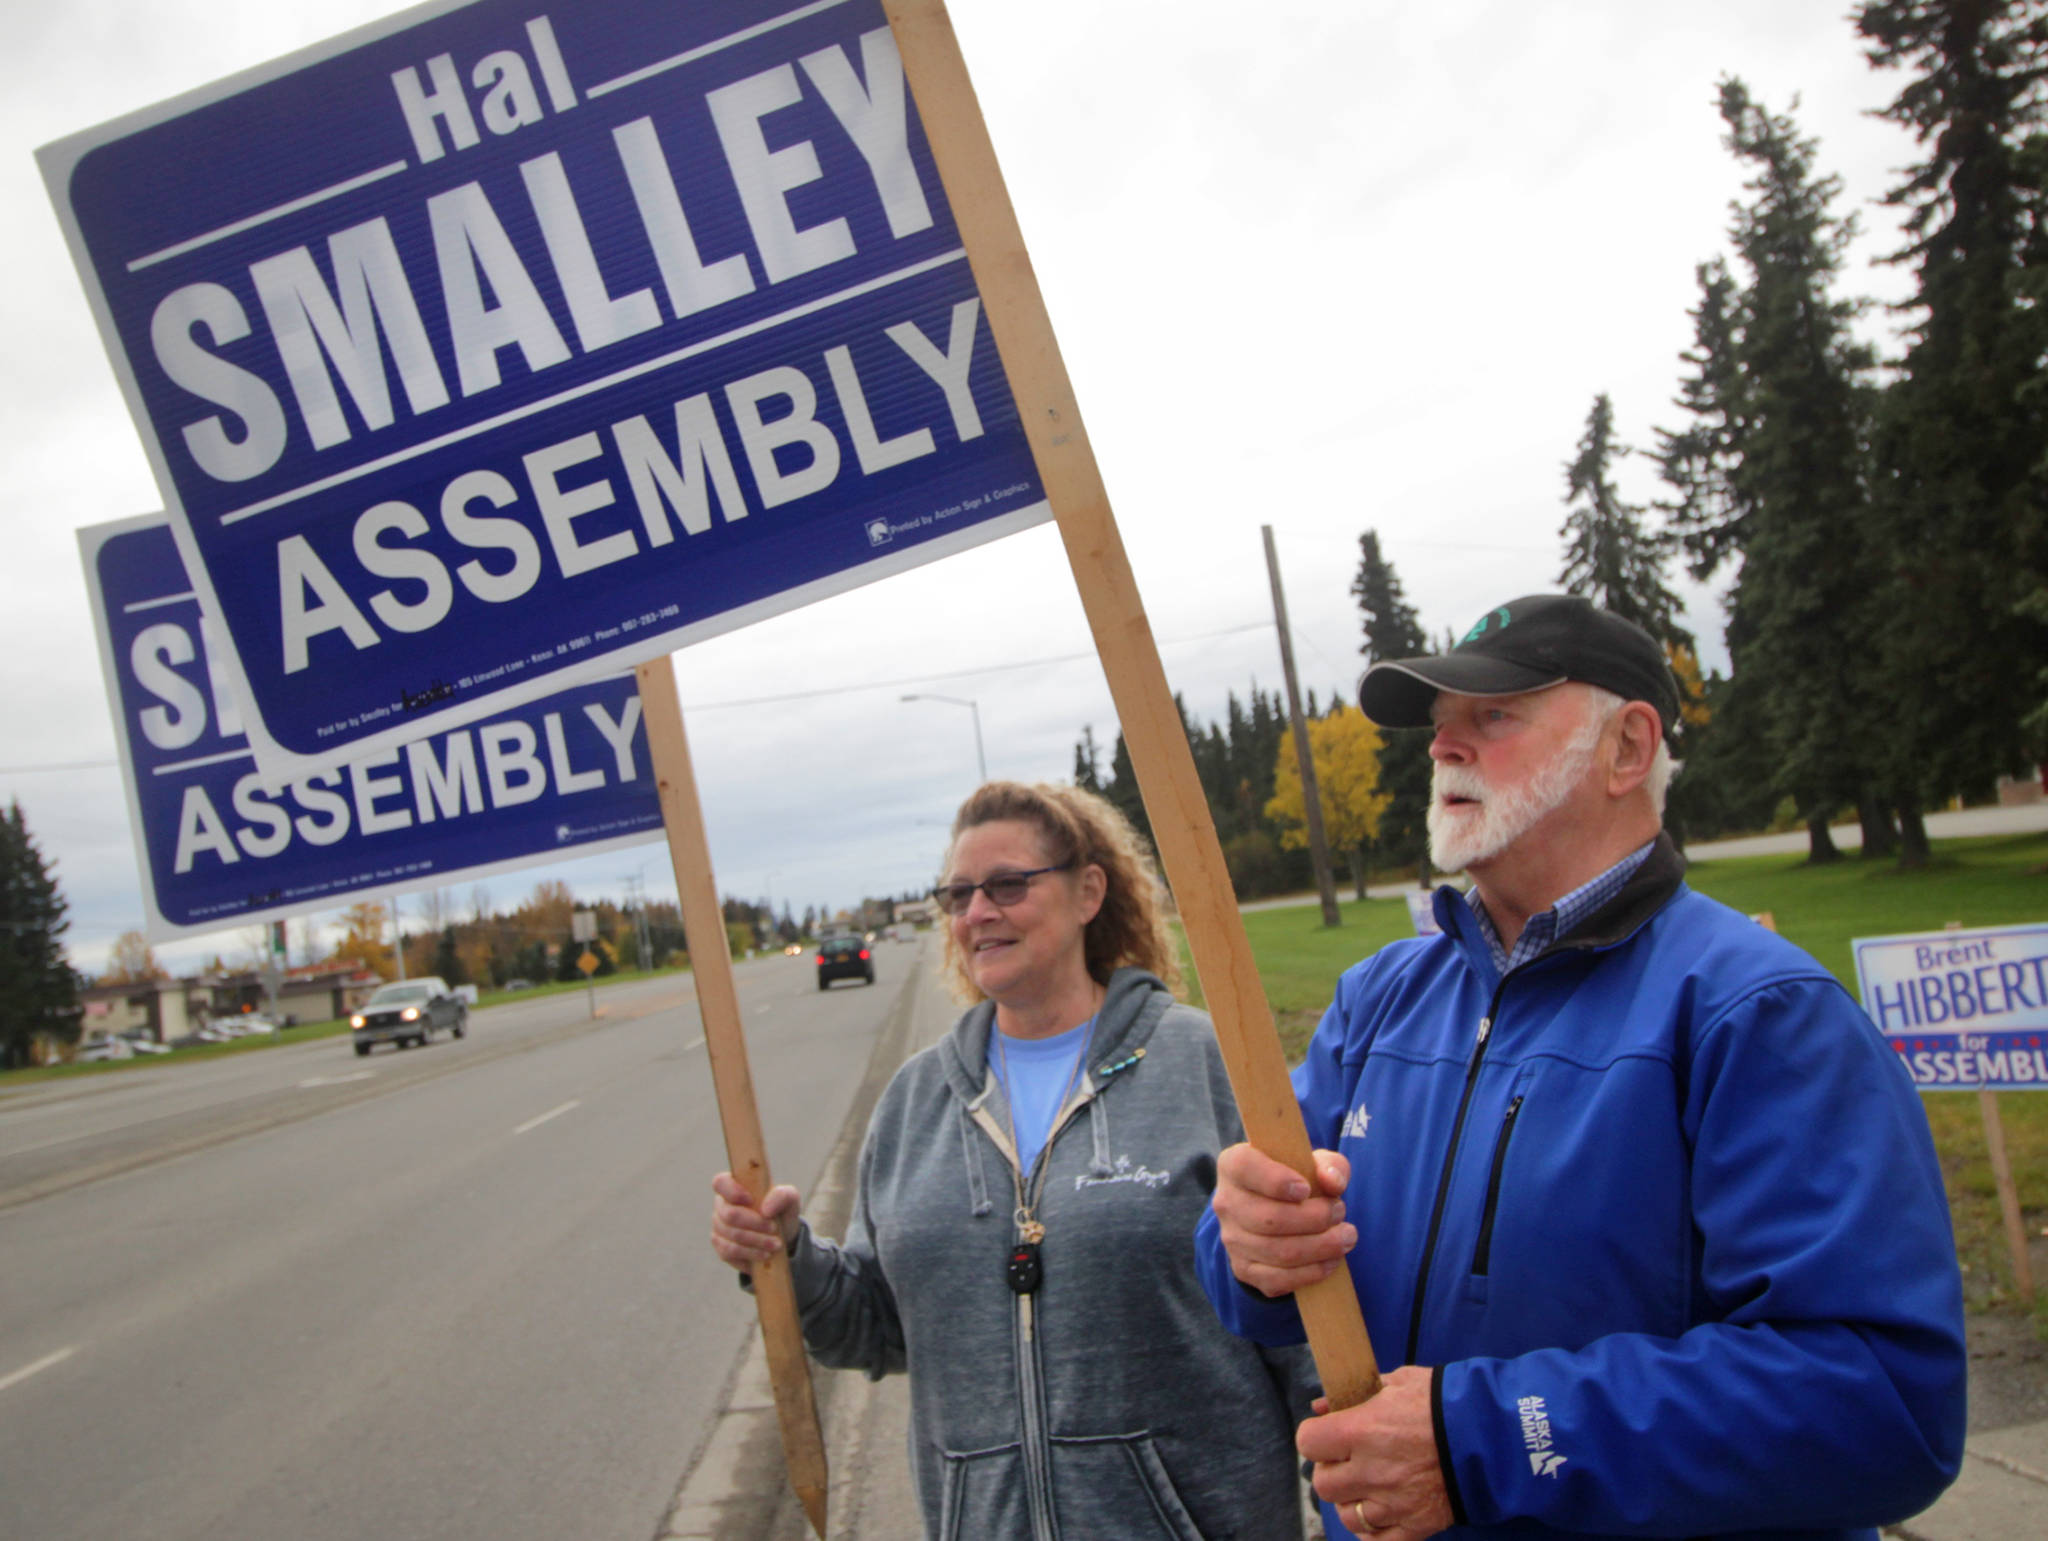 Kenai Peninsula Bourough assembly candidate Hal Smalley and supporter Michele Vasquez wave signs near the intersection of the Kenai Spur Highway and Bridge Access Road on Tuesday, Oct. 3 in Kenai. (Ben Boettger/Peninsula Clarion)